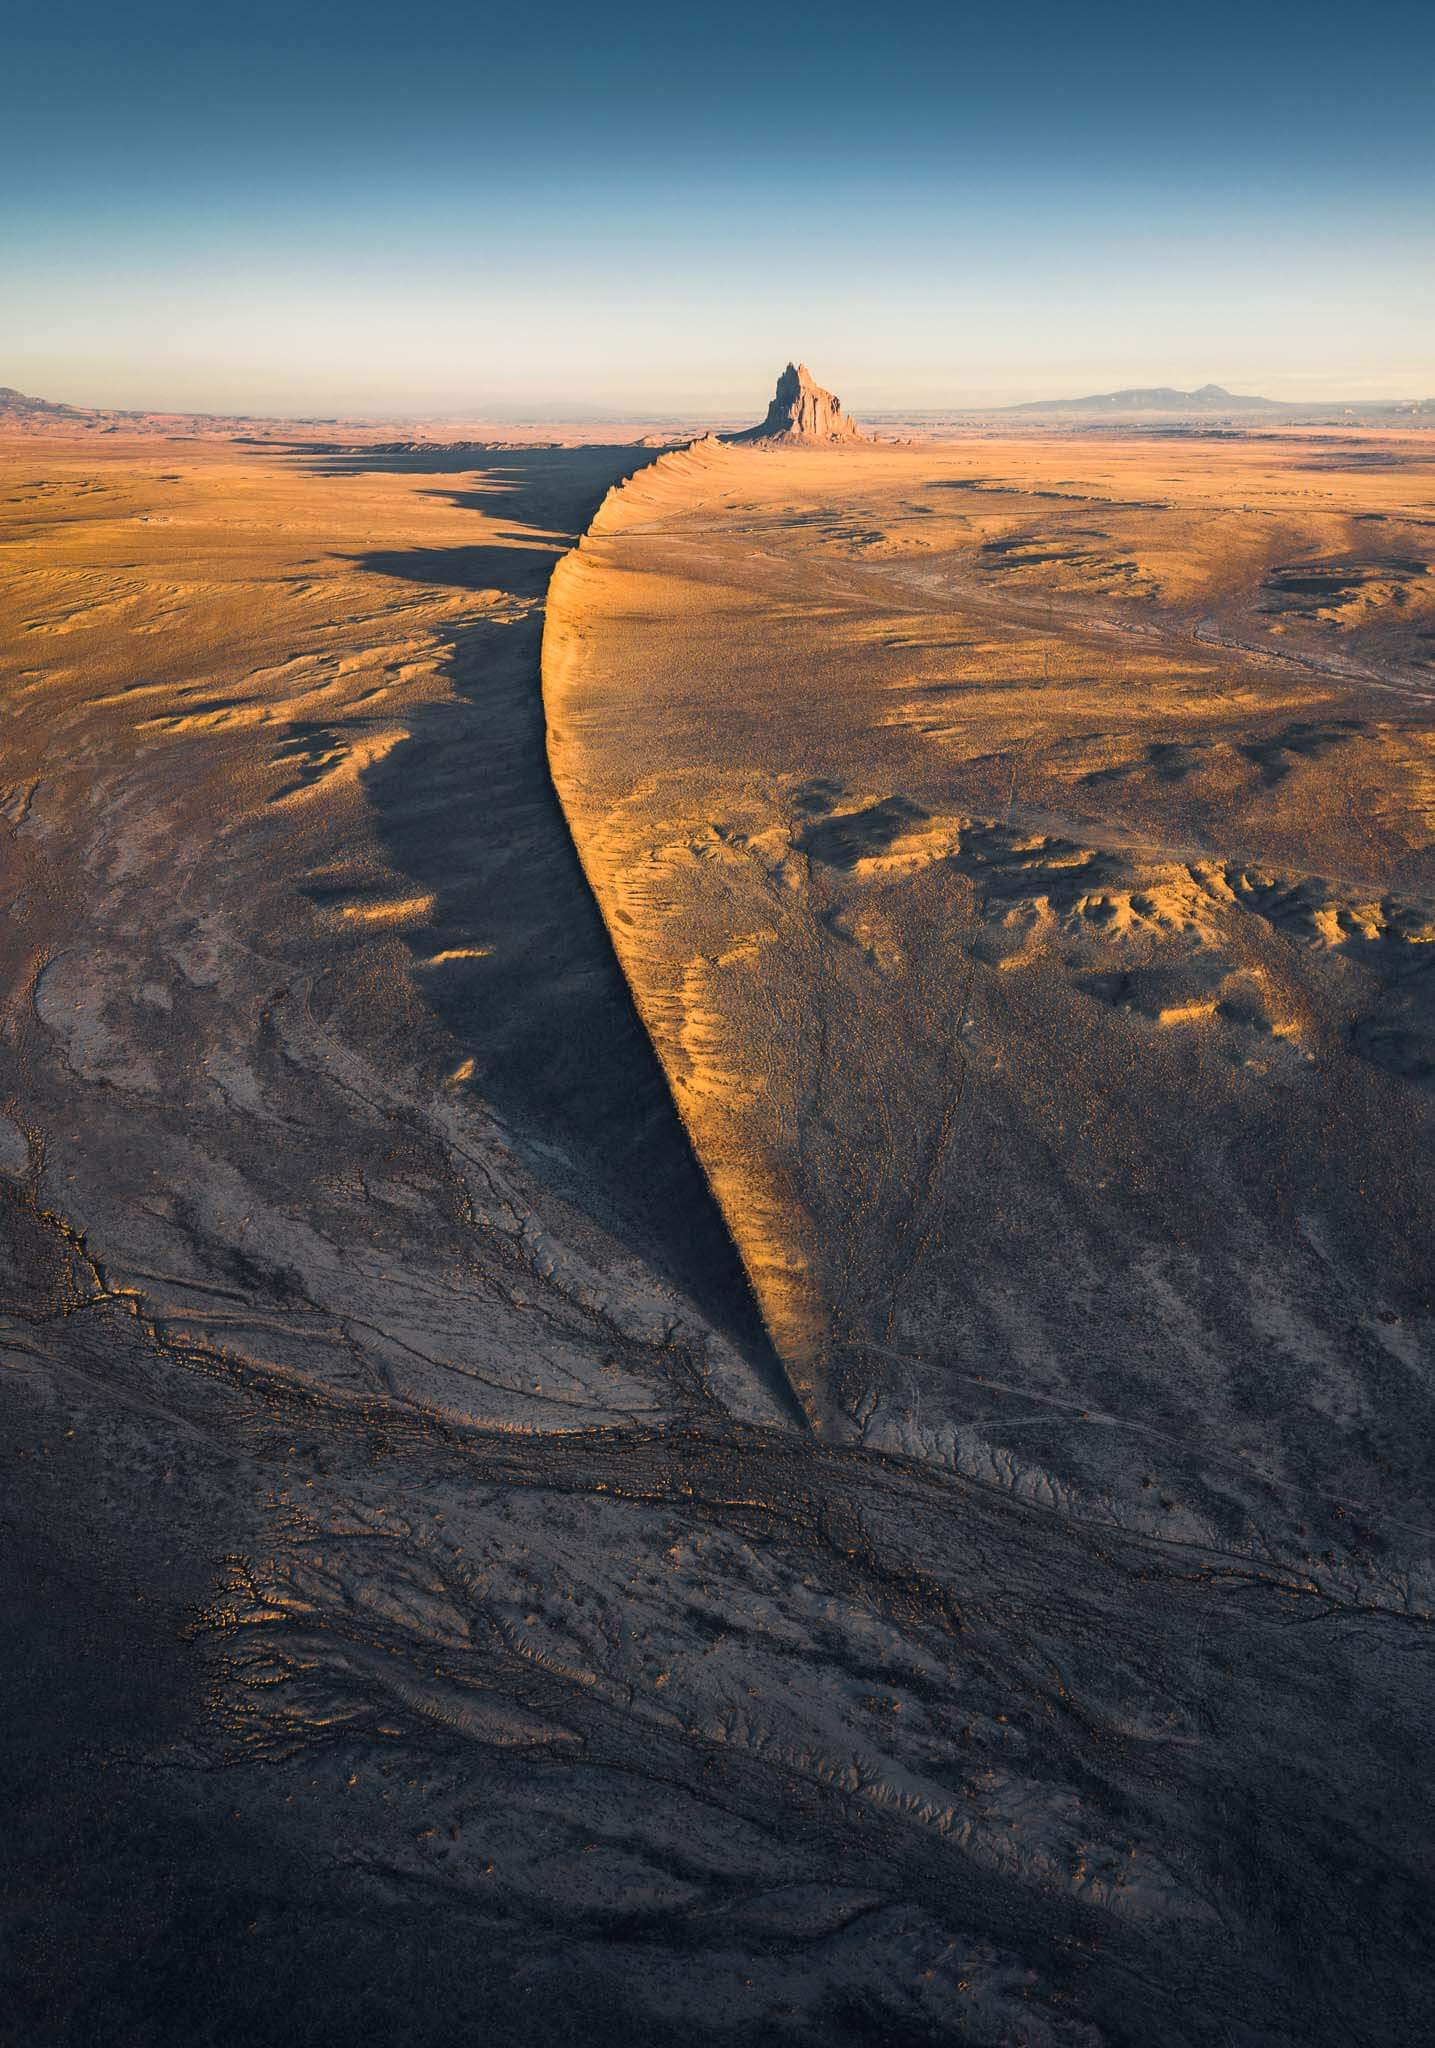 Flying above Shiprock in New Mexico